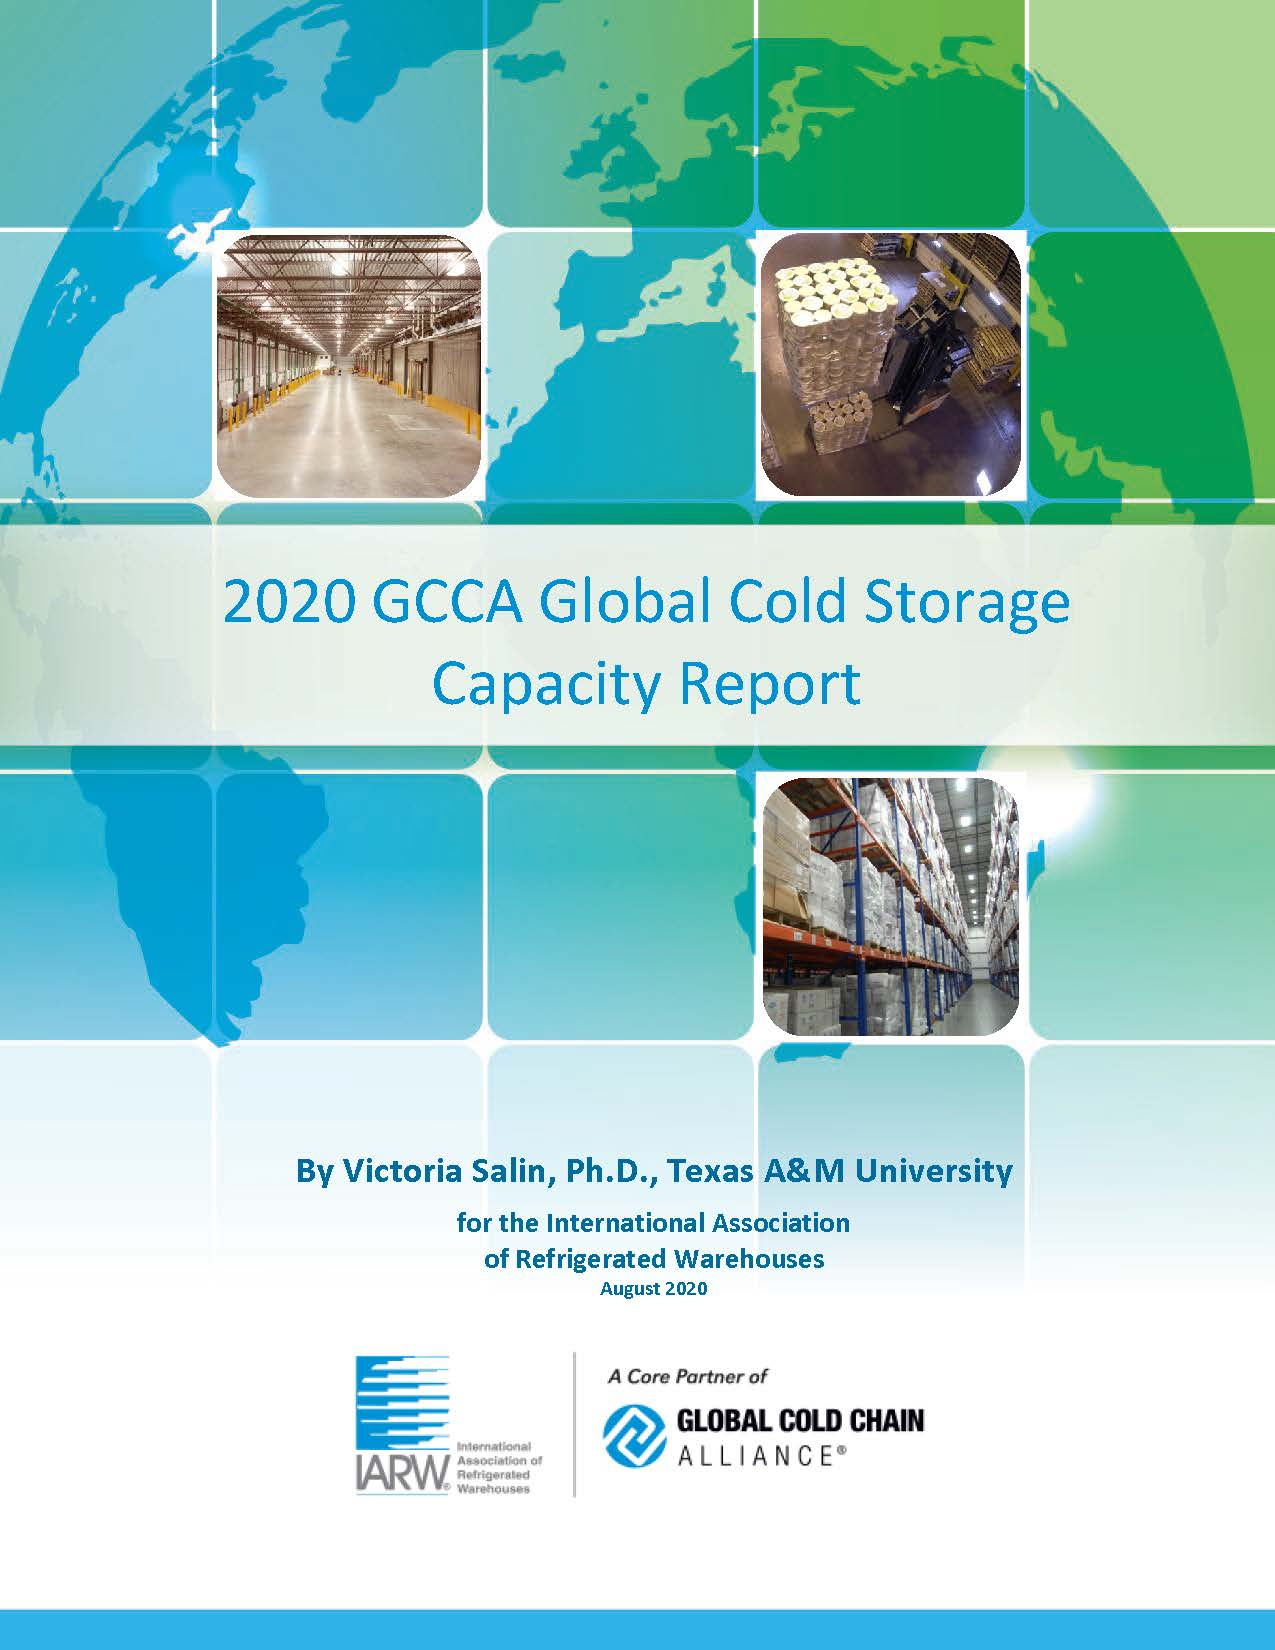 GCCA Global Cold Storage Capacity Report (2020)